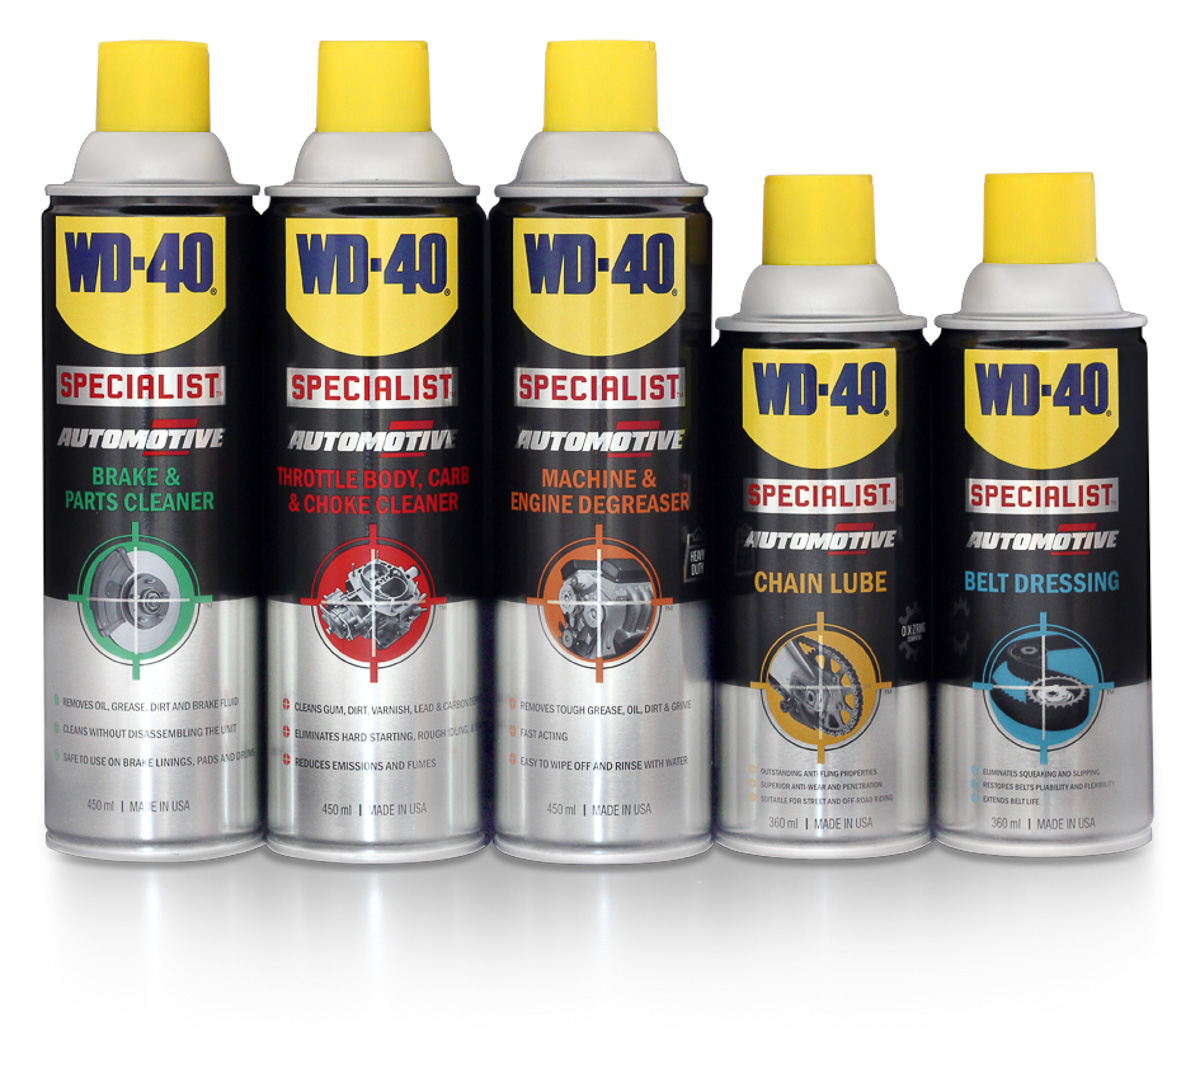 VD-40 - what is it? WD-40 Universal aerosol grease: characteristics, application, manufacturer, reviews 95